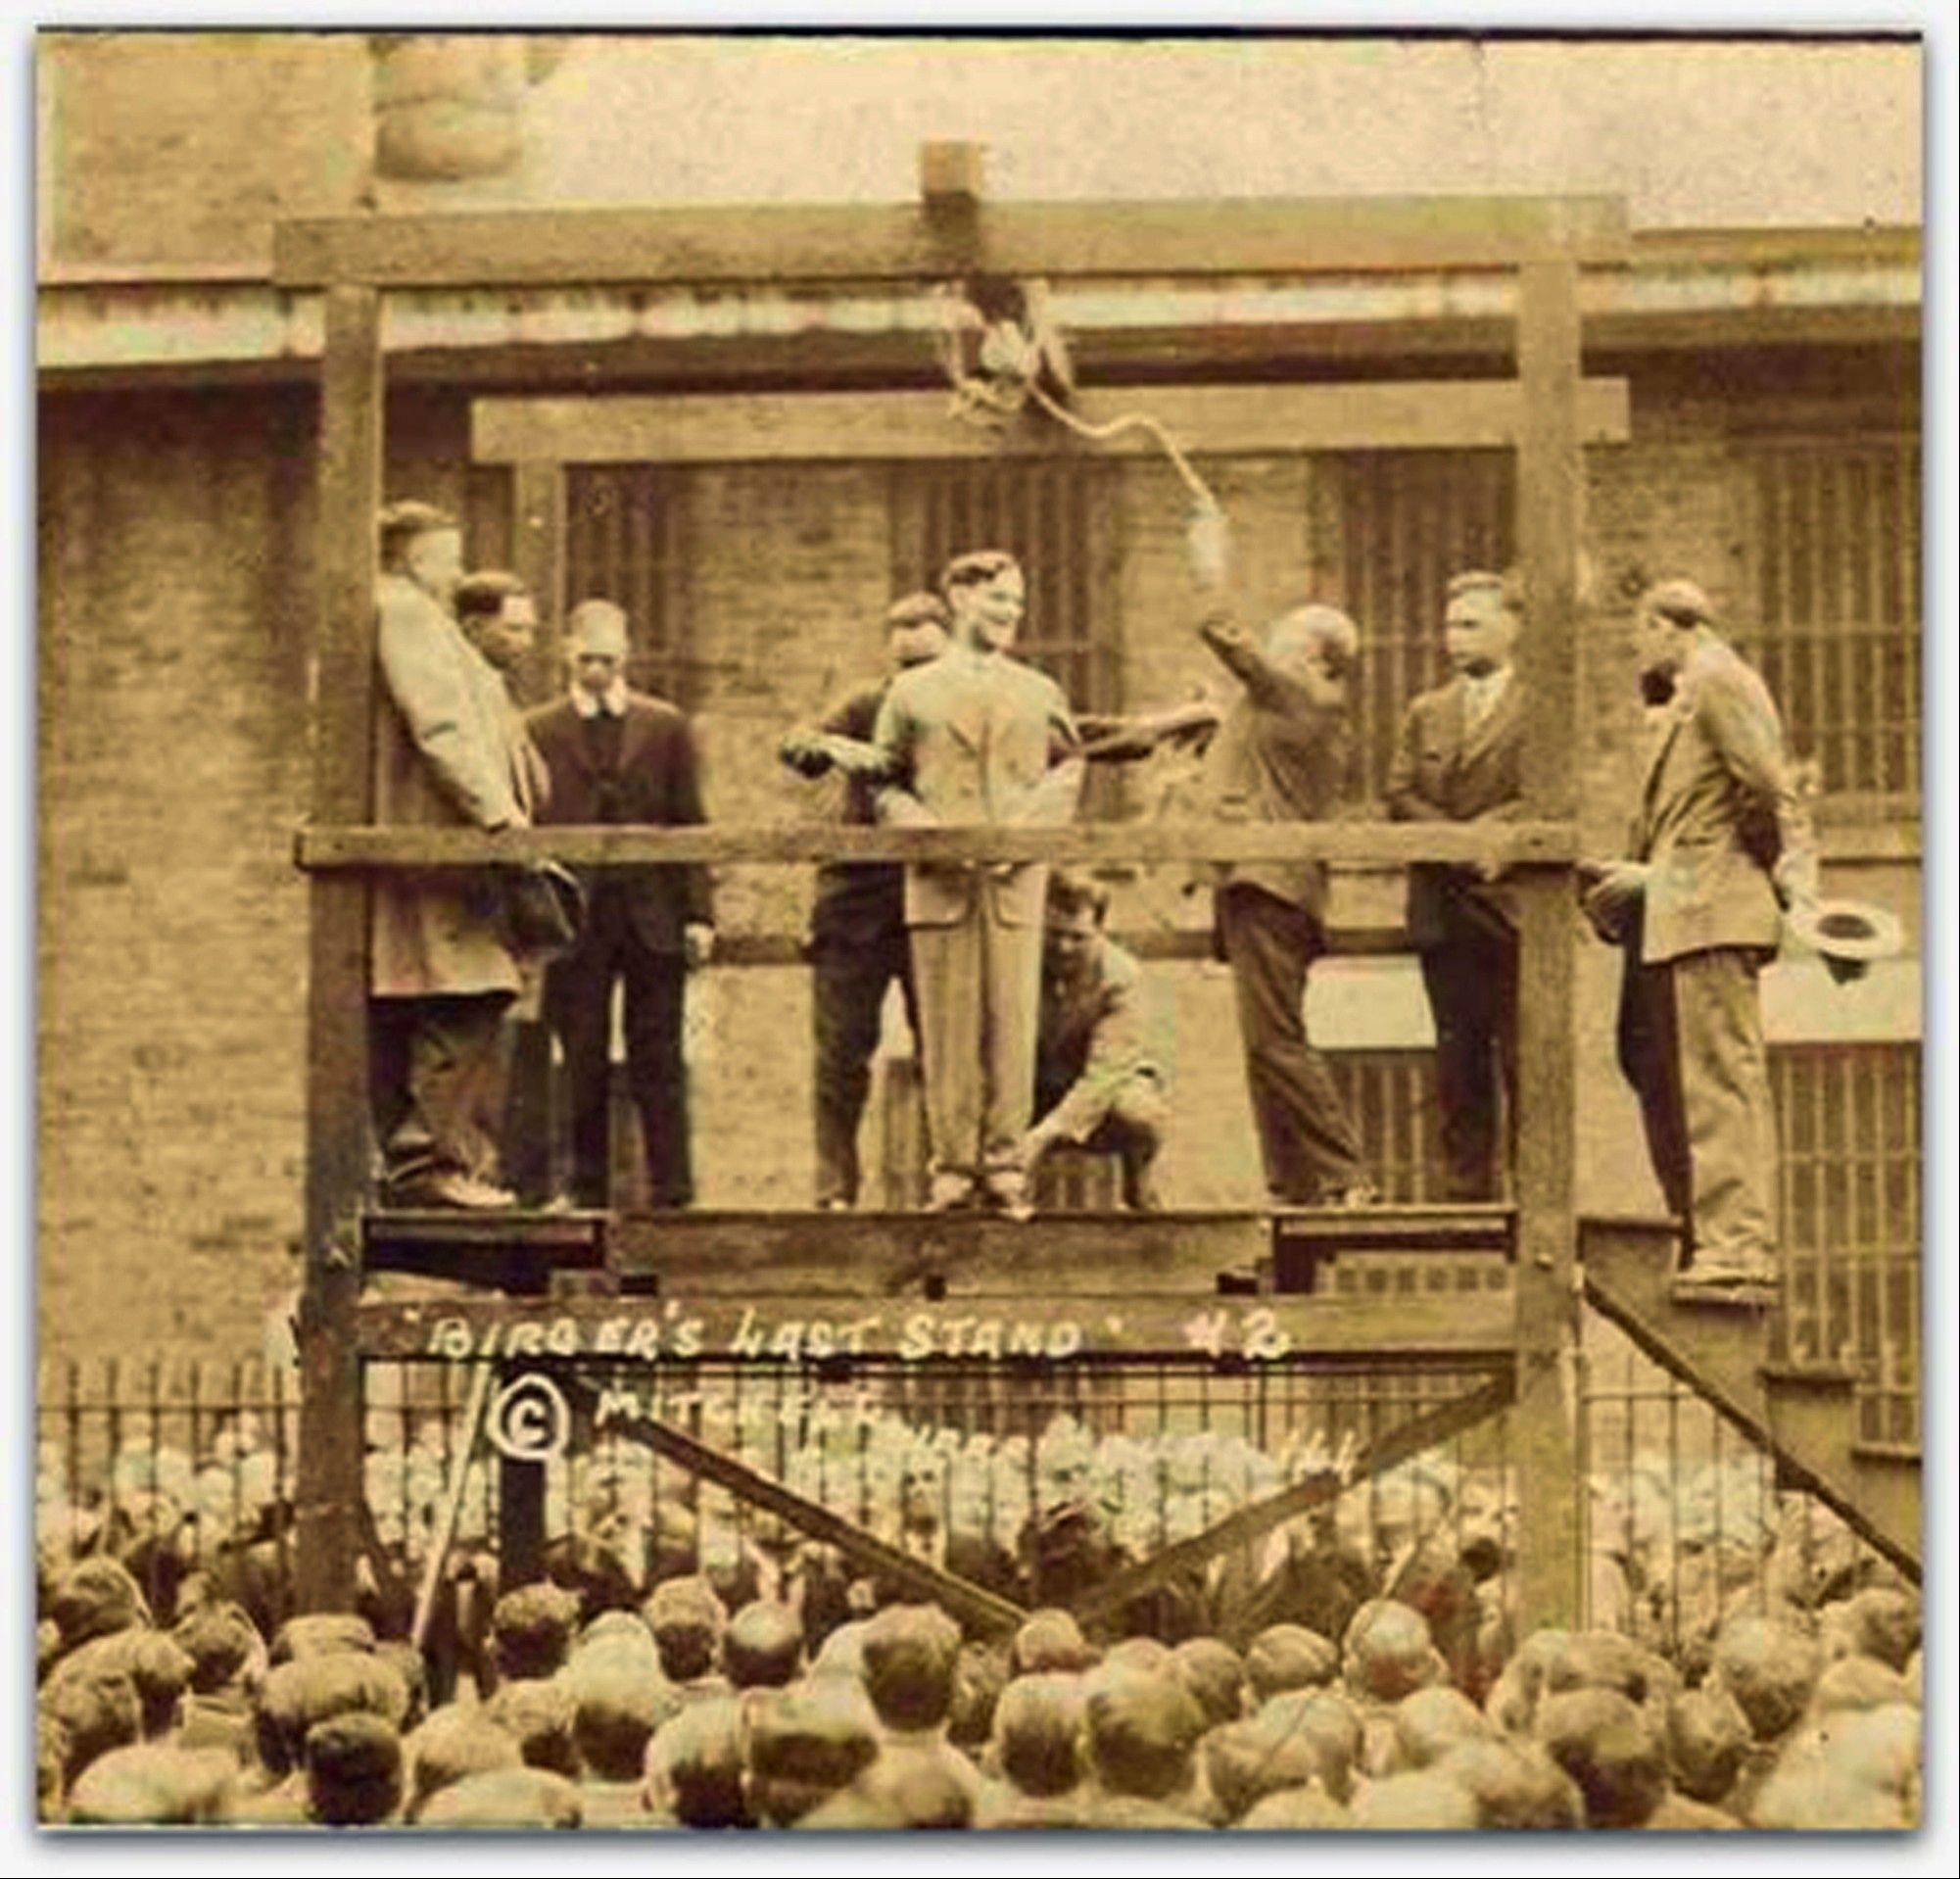 Bootlegging gangster Charlie Birger, center, stands on the gallows just before his public hanging in downstate Benton. Birger was the last person to be publicly hanged in Illinois.